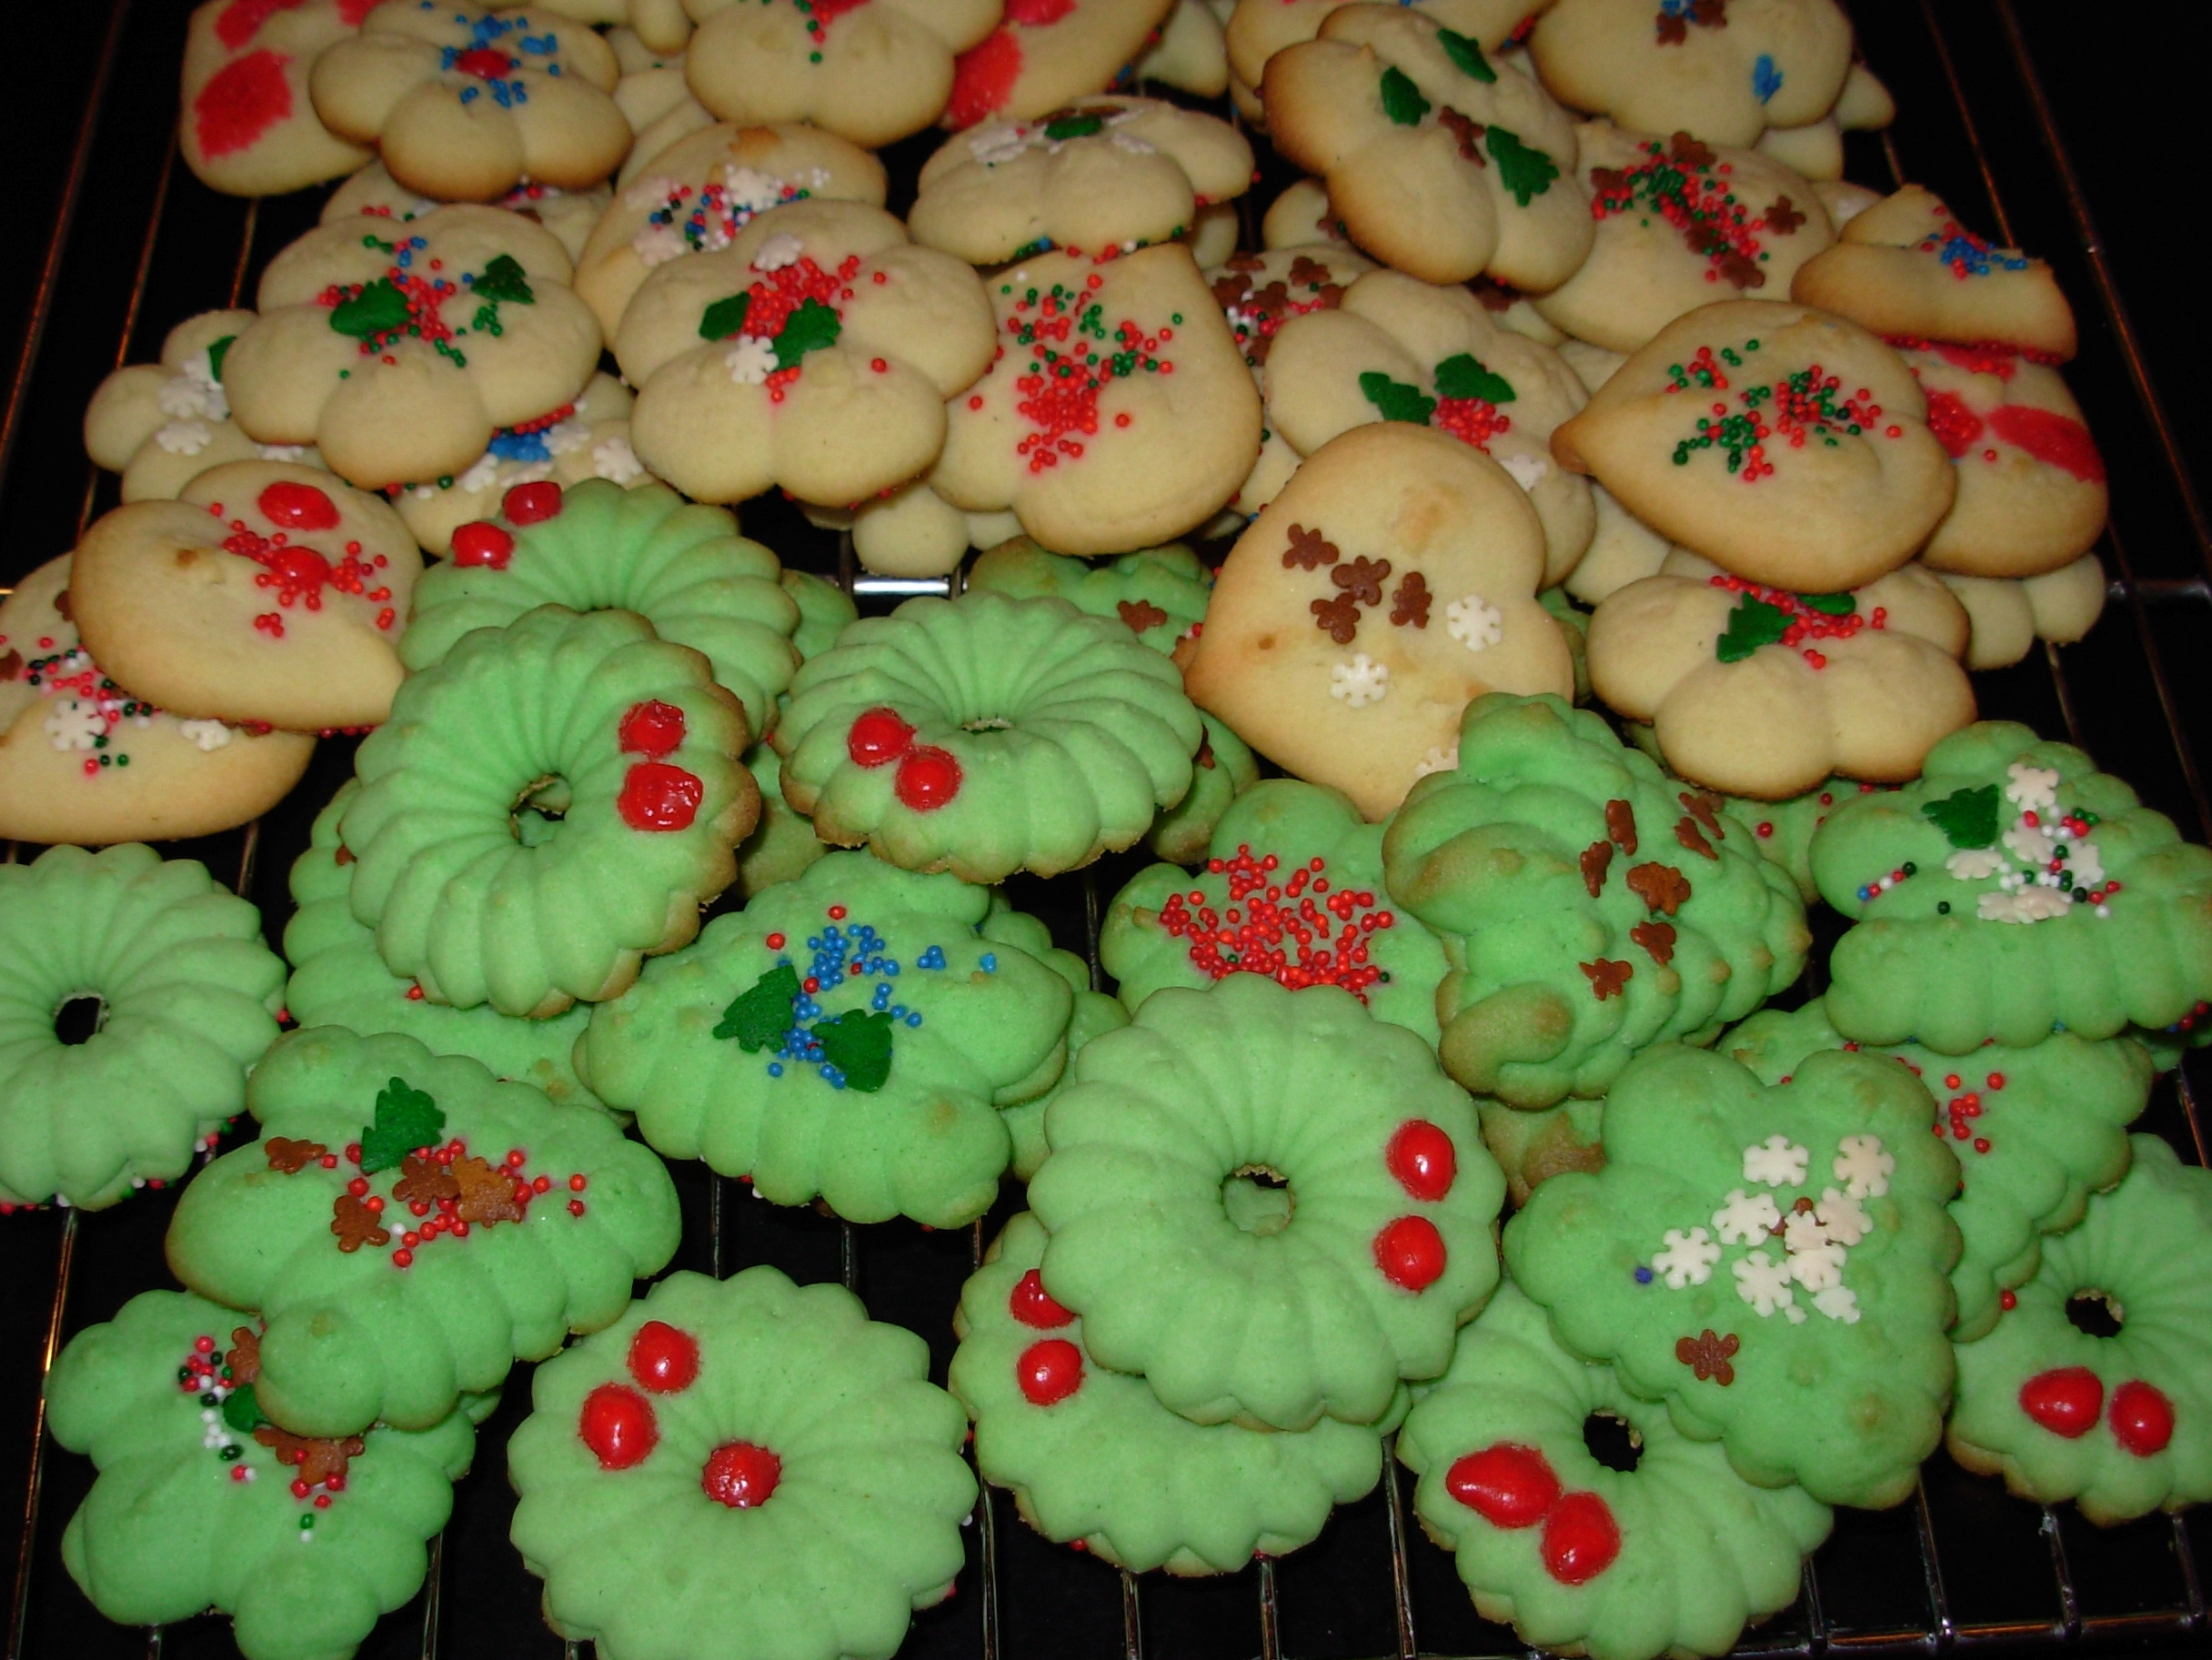 12 days of green holiday gifts homemade cookies slow family - Homemade Christmas Cookies